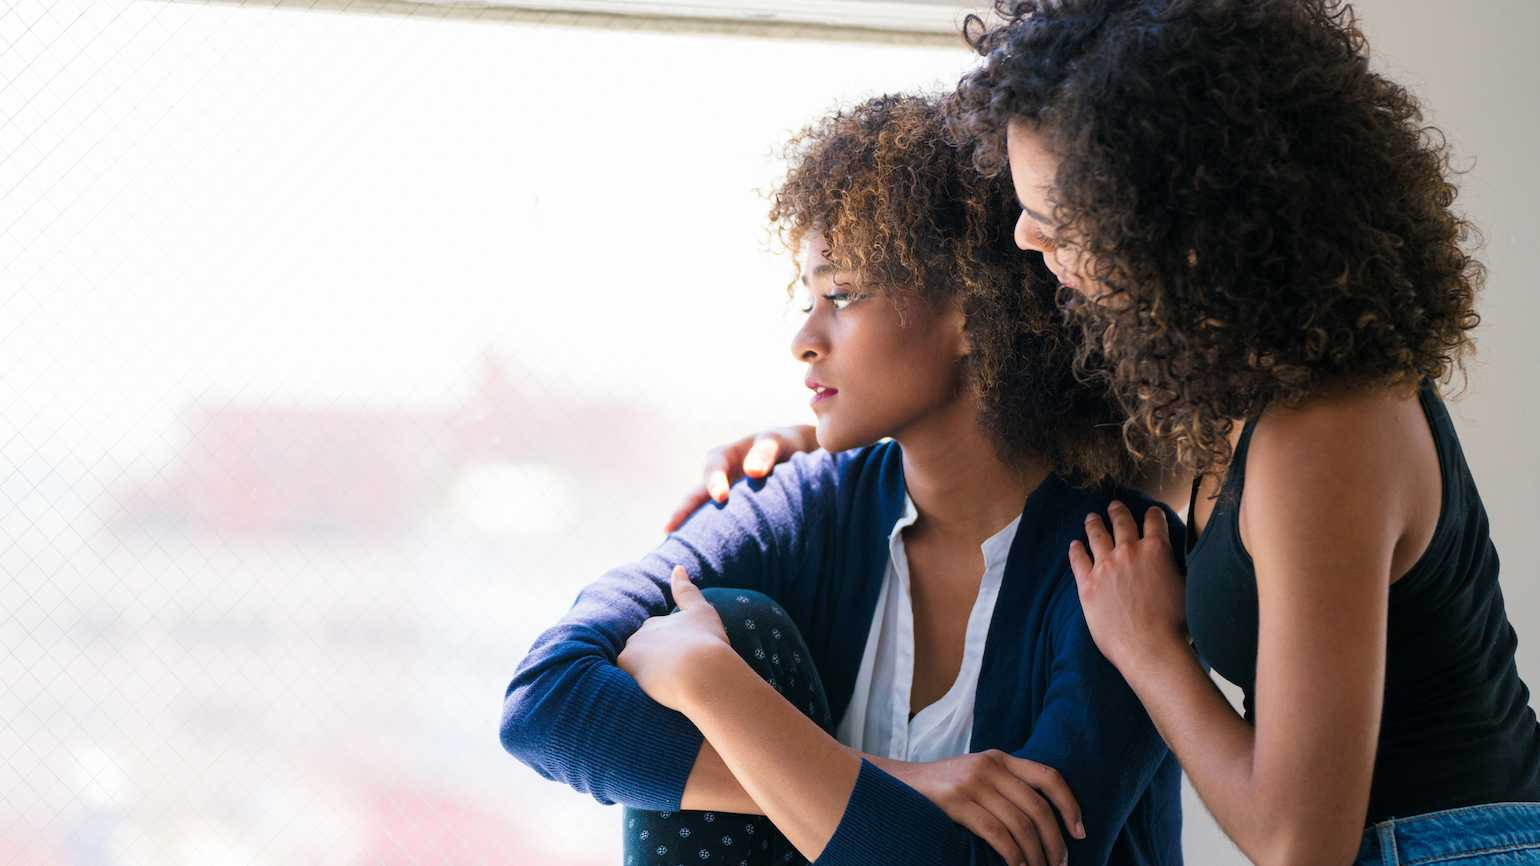 How to be authentically compassionate